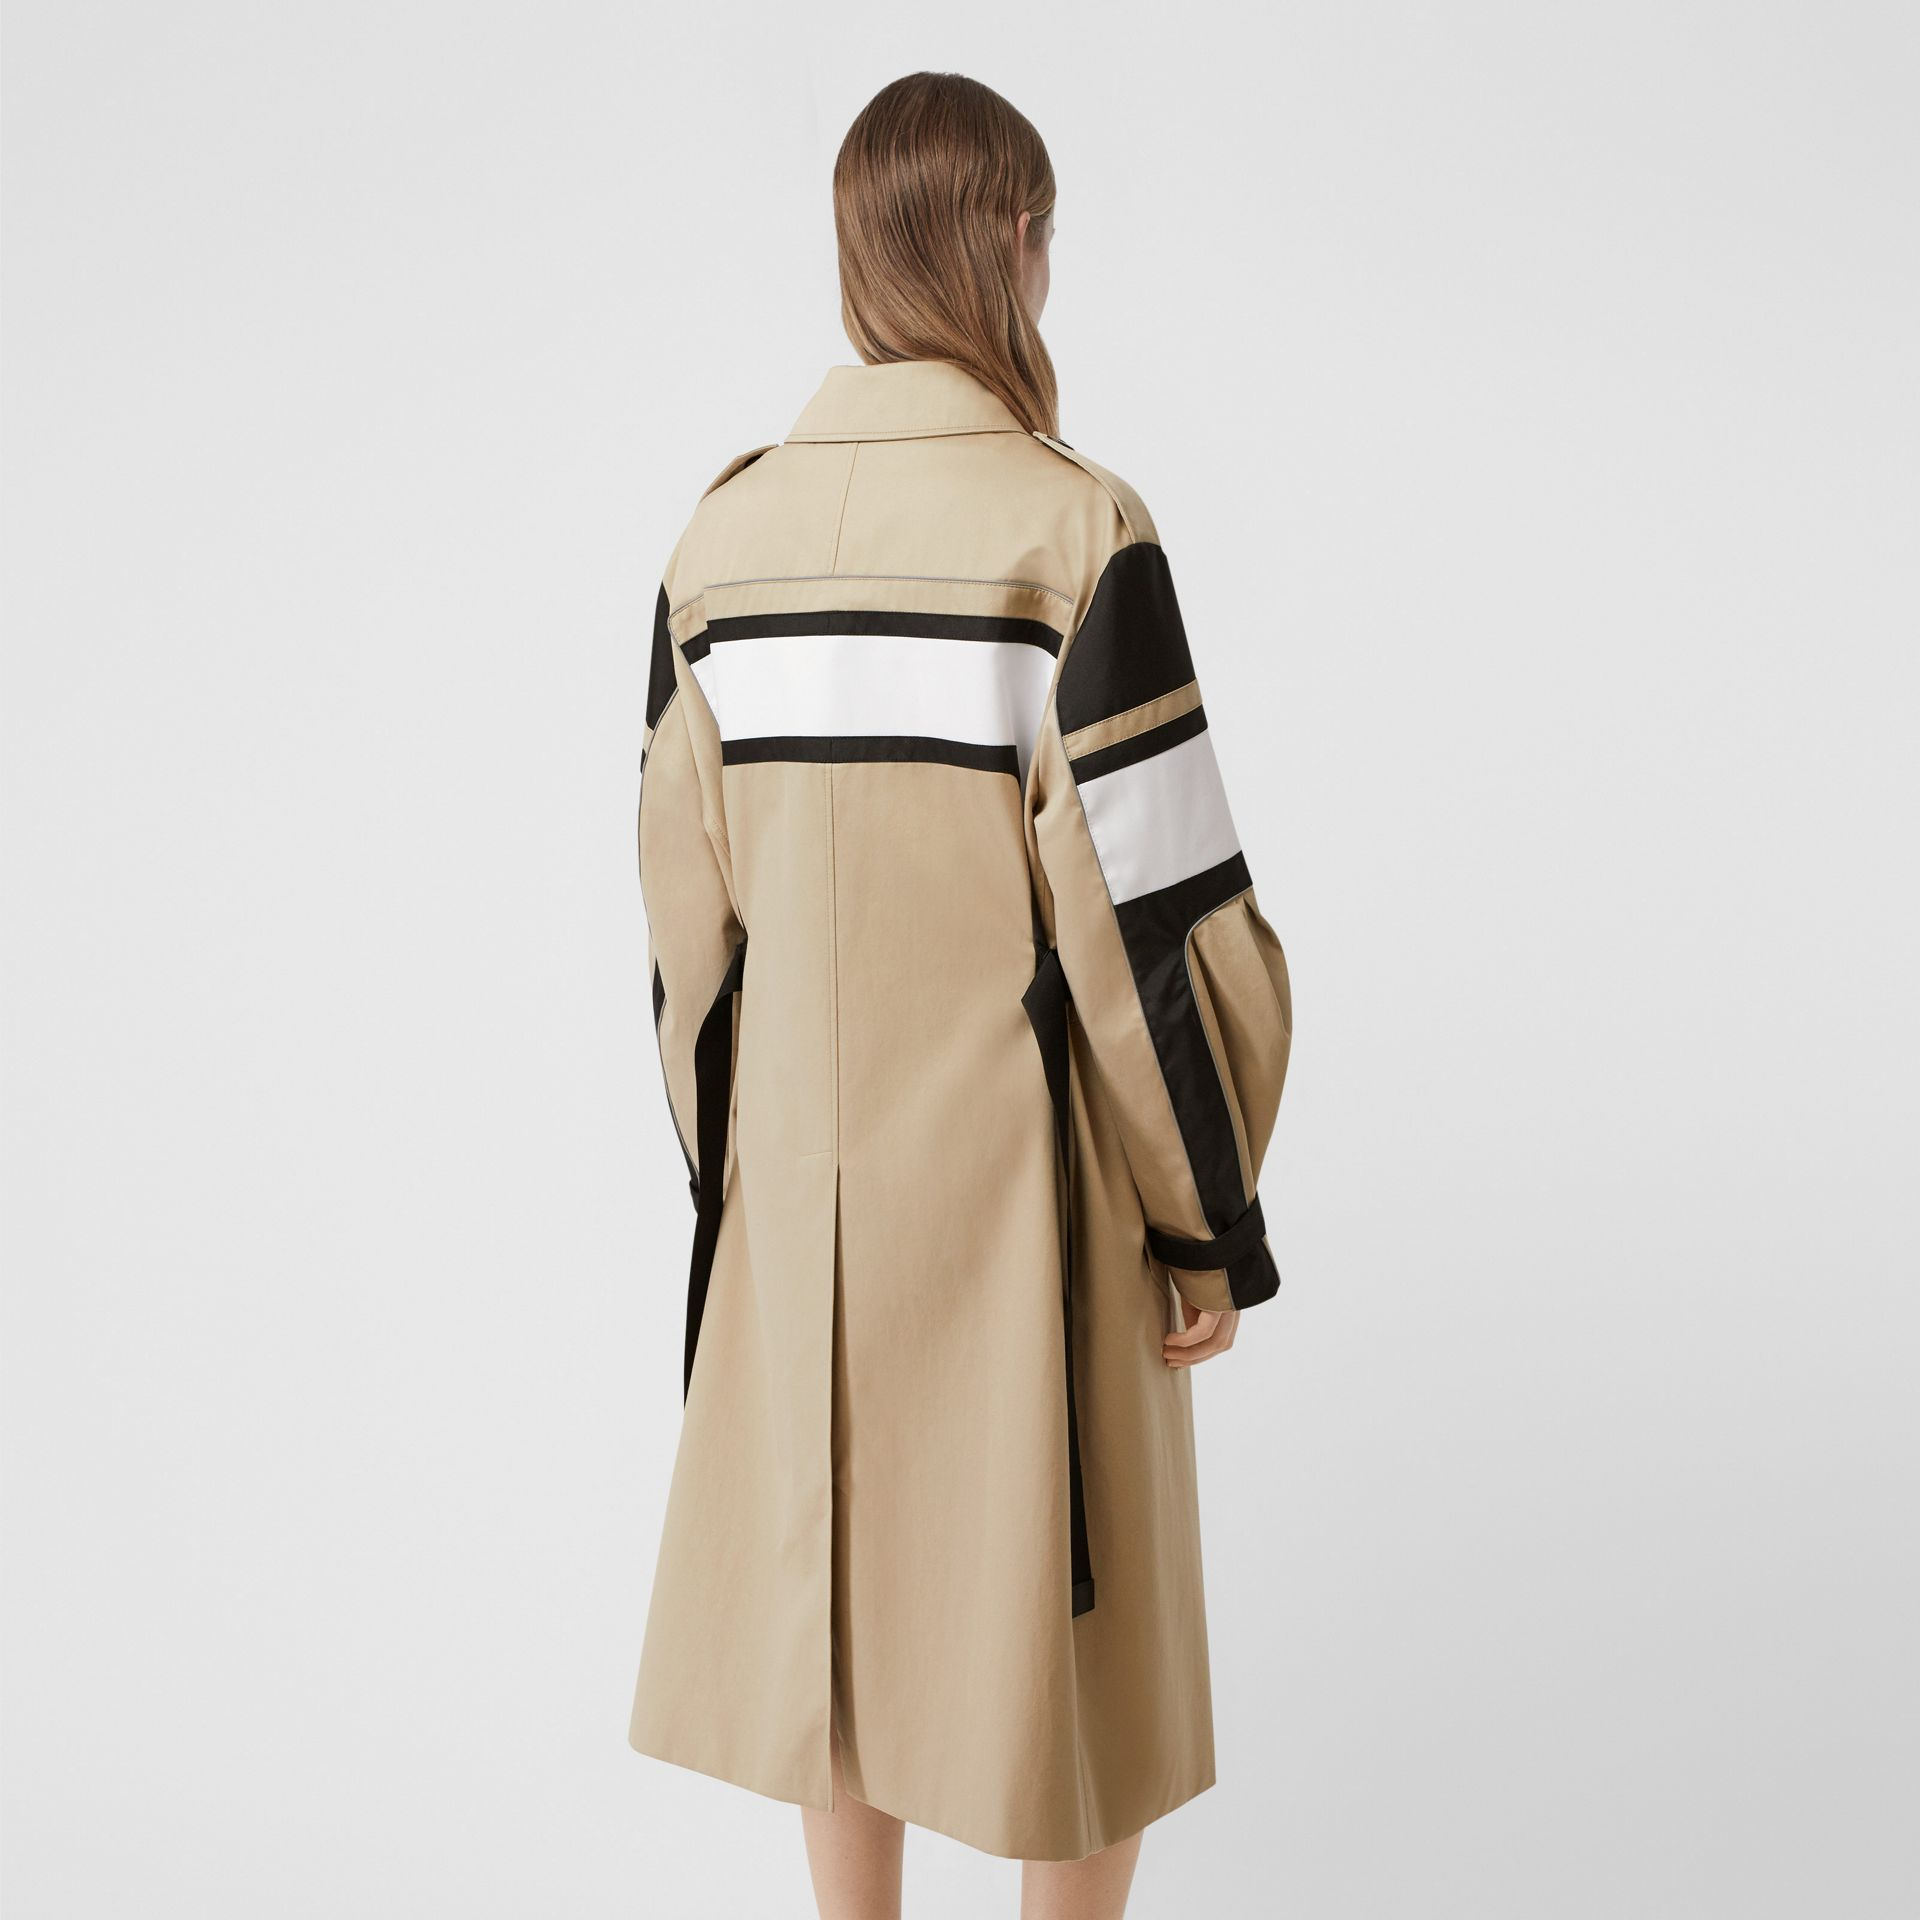 Cotton Gabardine Reconstructed Trench Coat in Soft Fawn - Women | Burberry Australia - gallery image 2